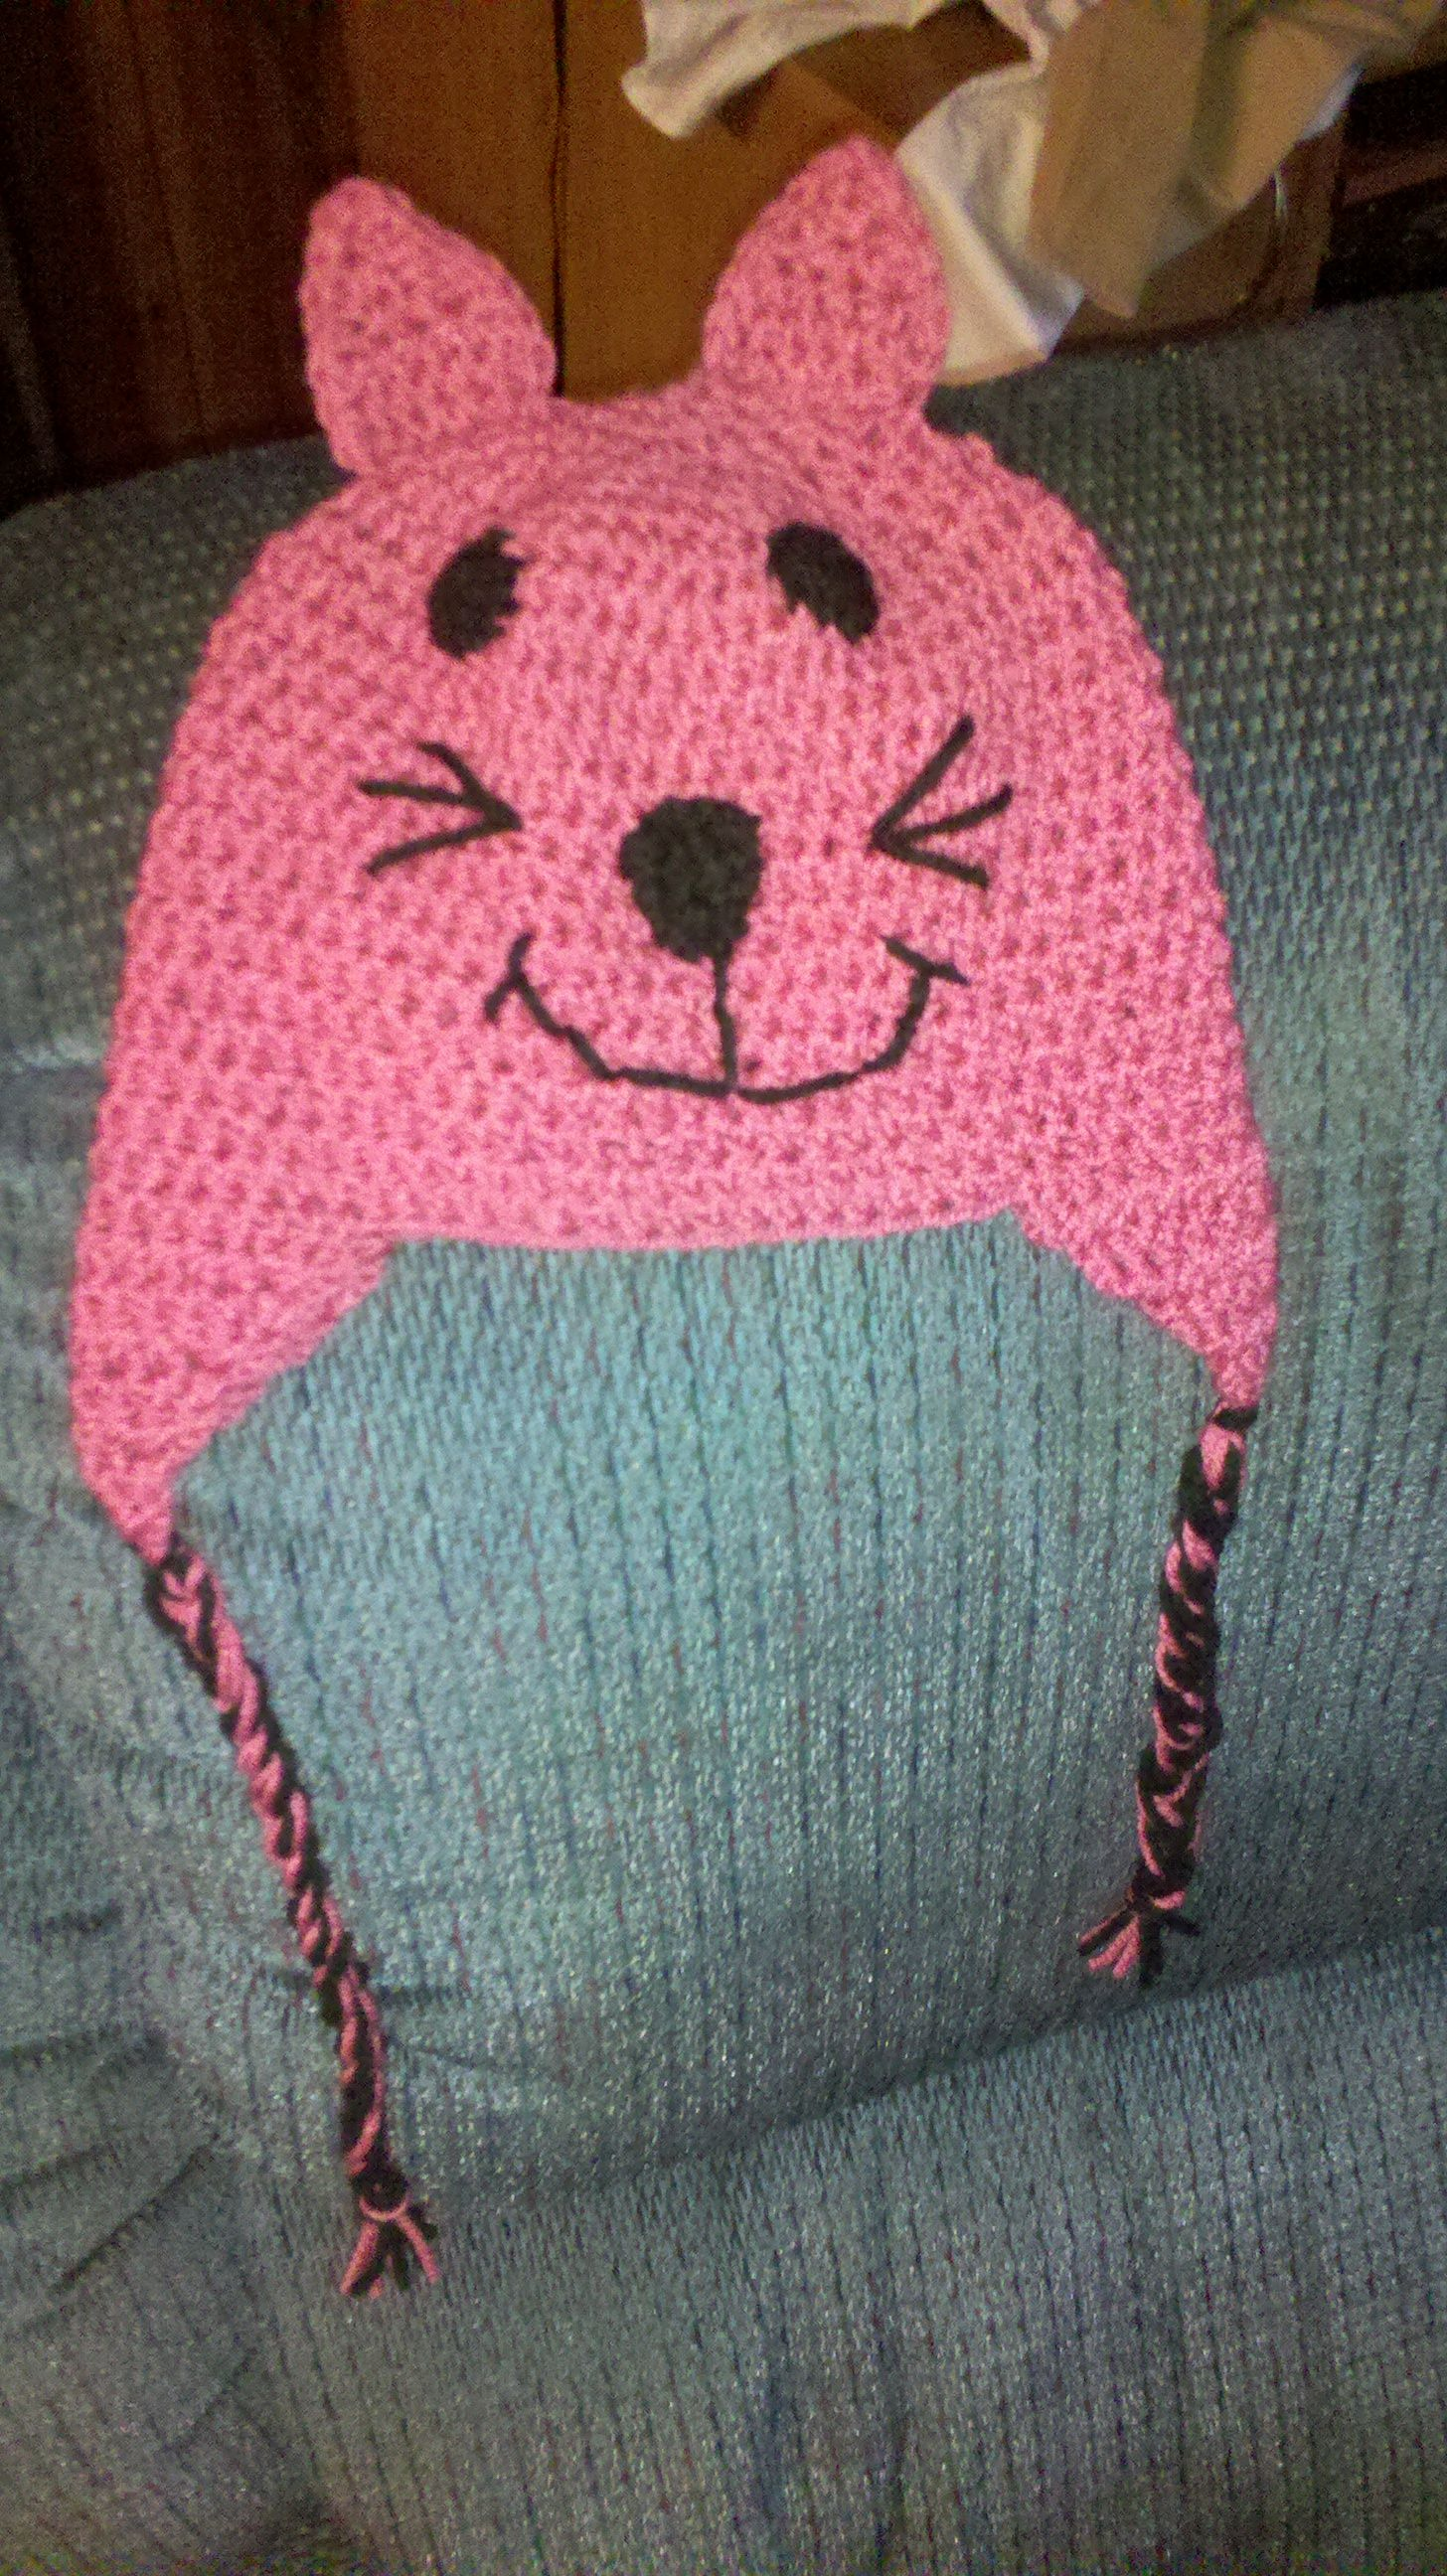 Crochet Cat Hat : crochet cat hat crochet Pinterest